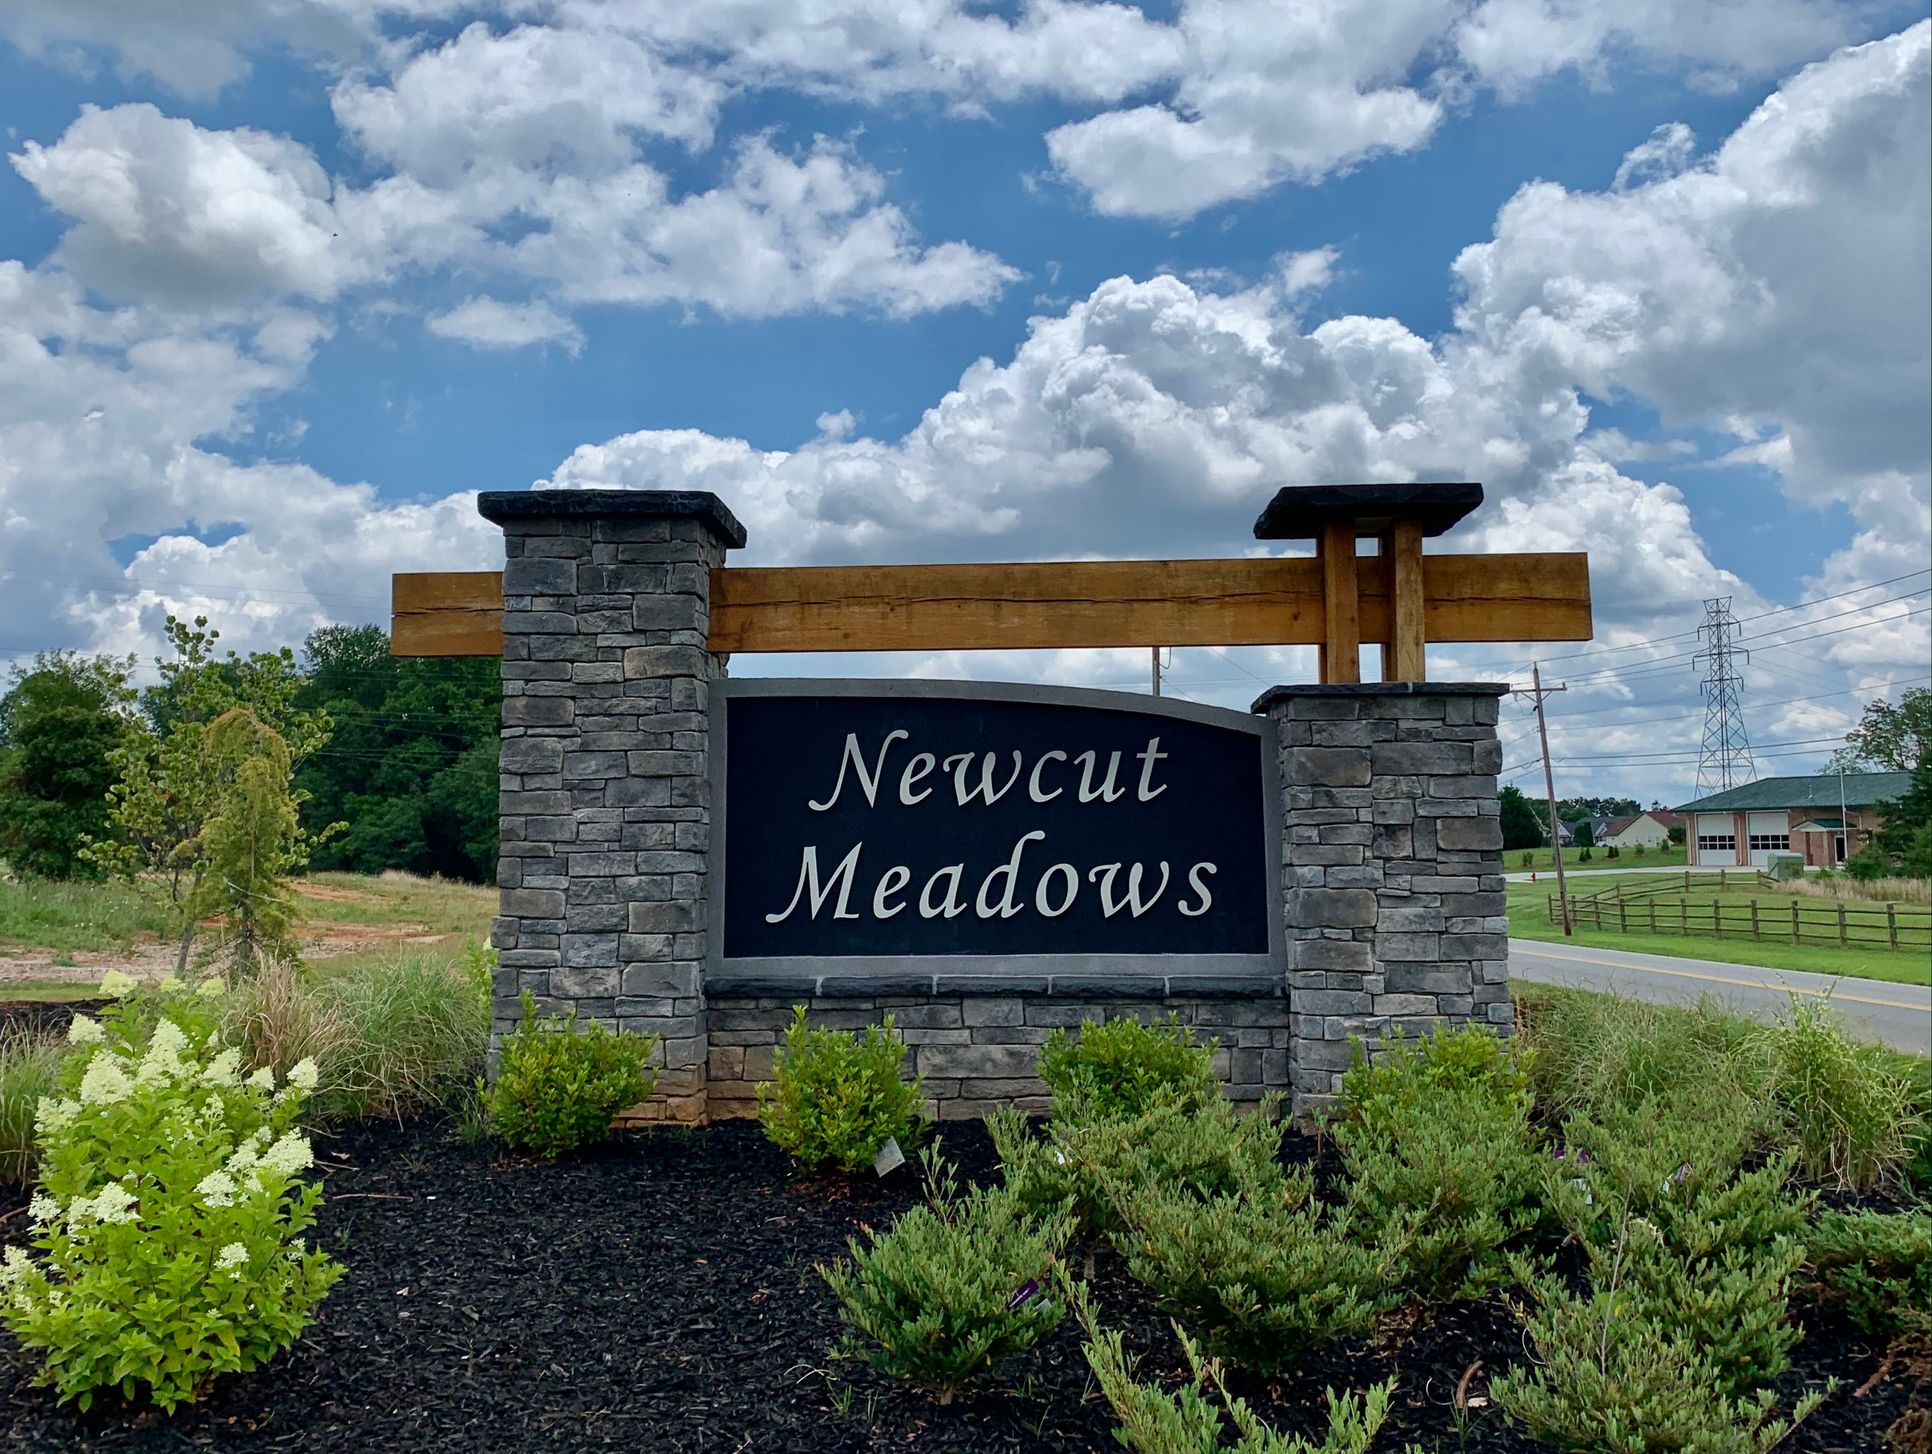 Newcut Meadows entry monument